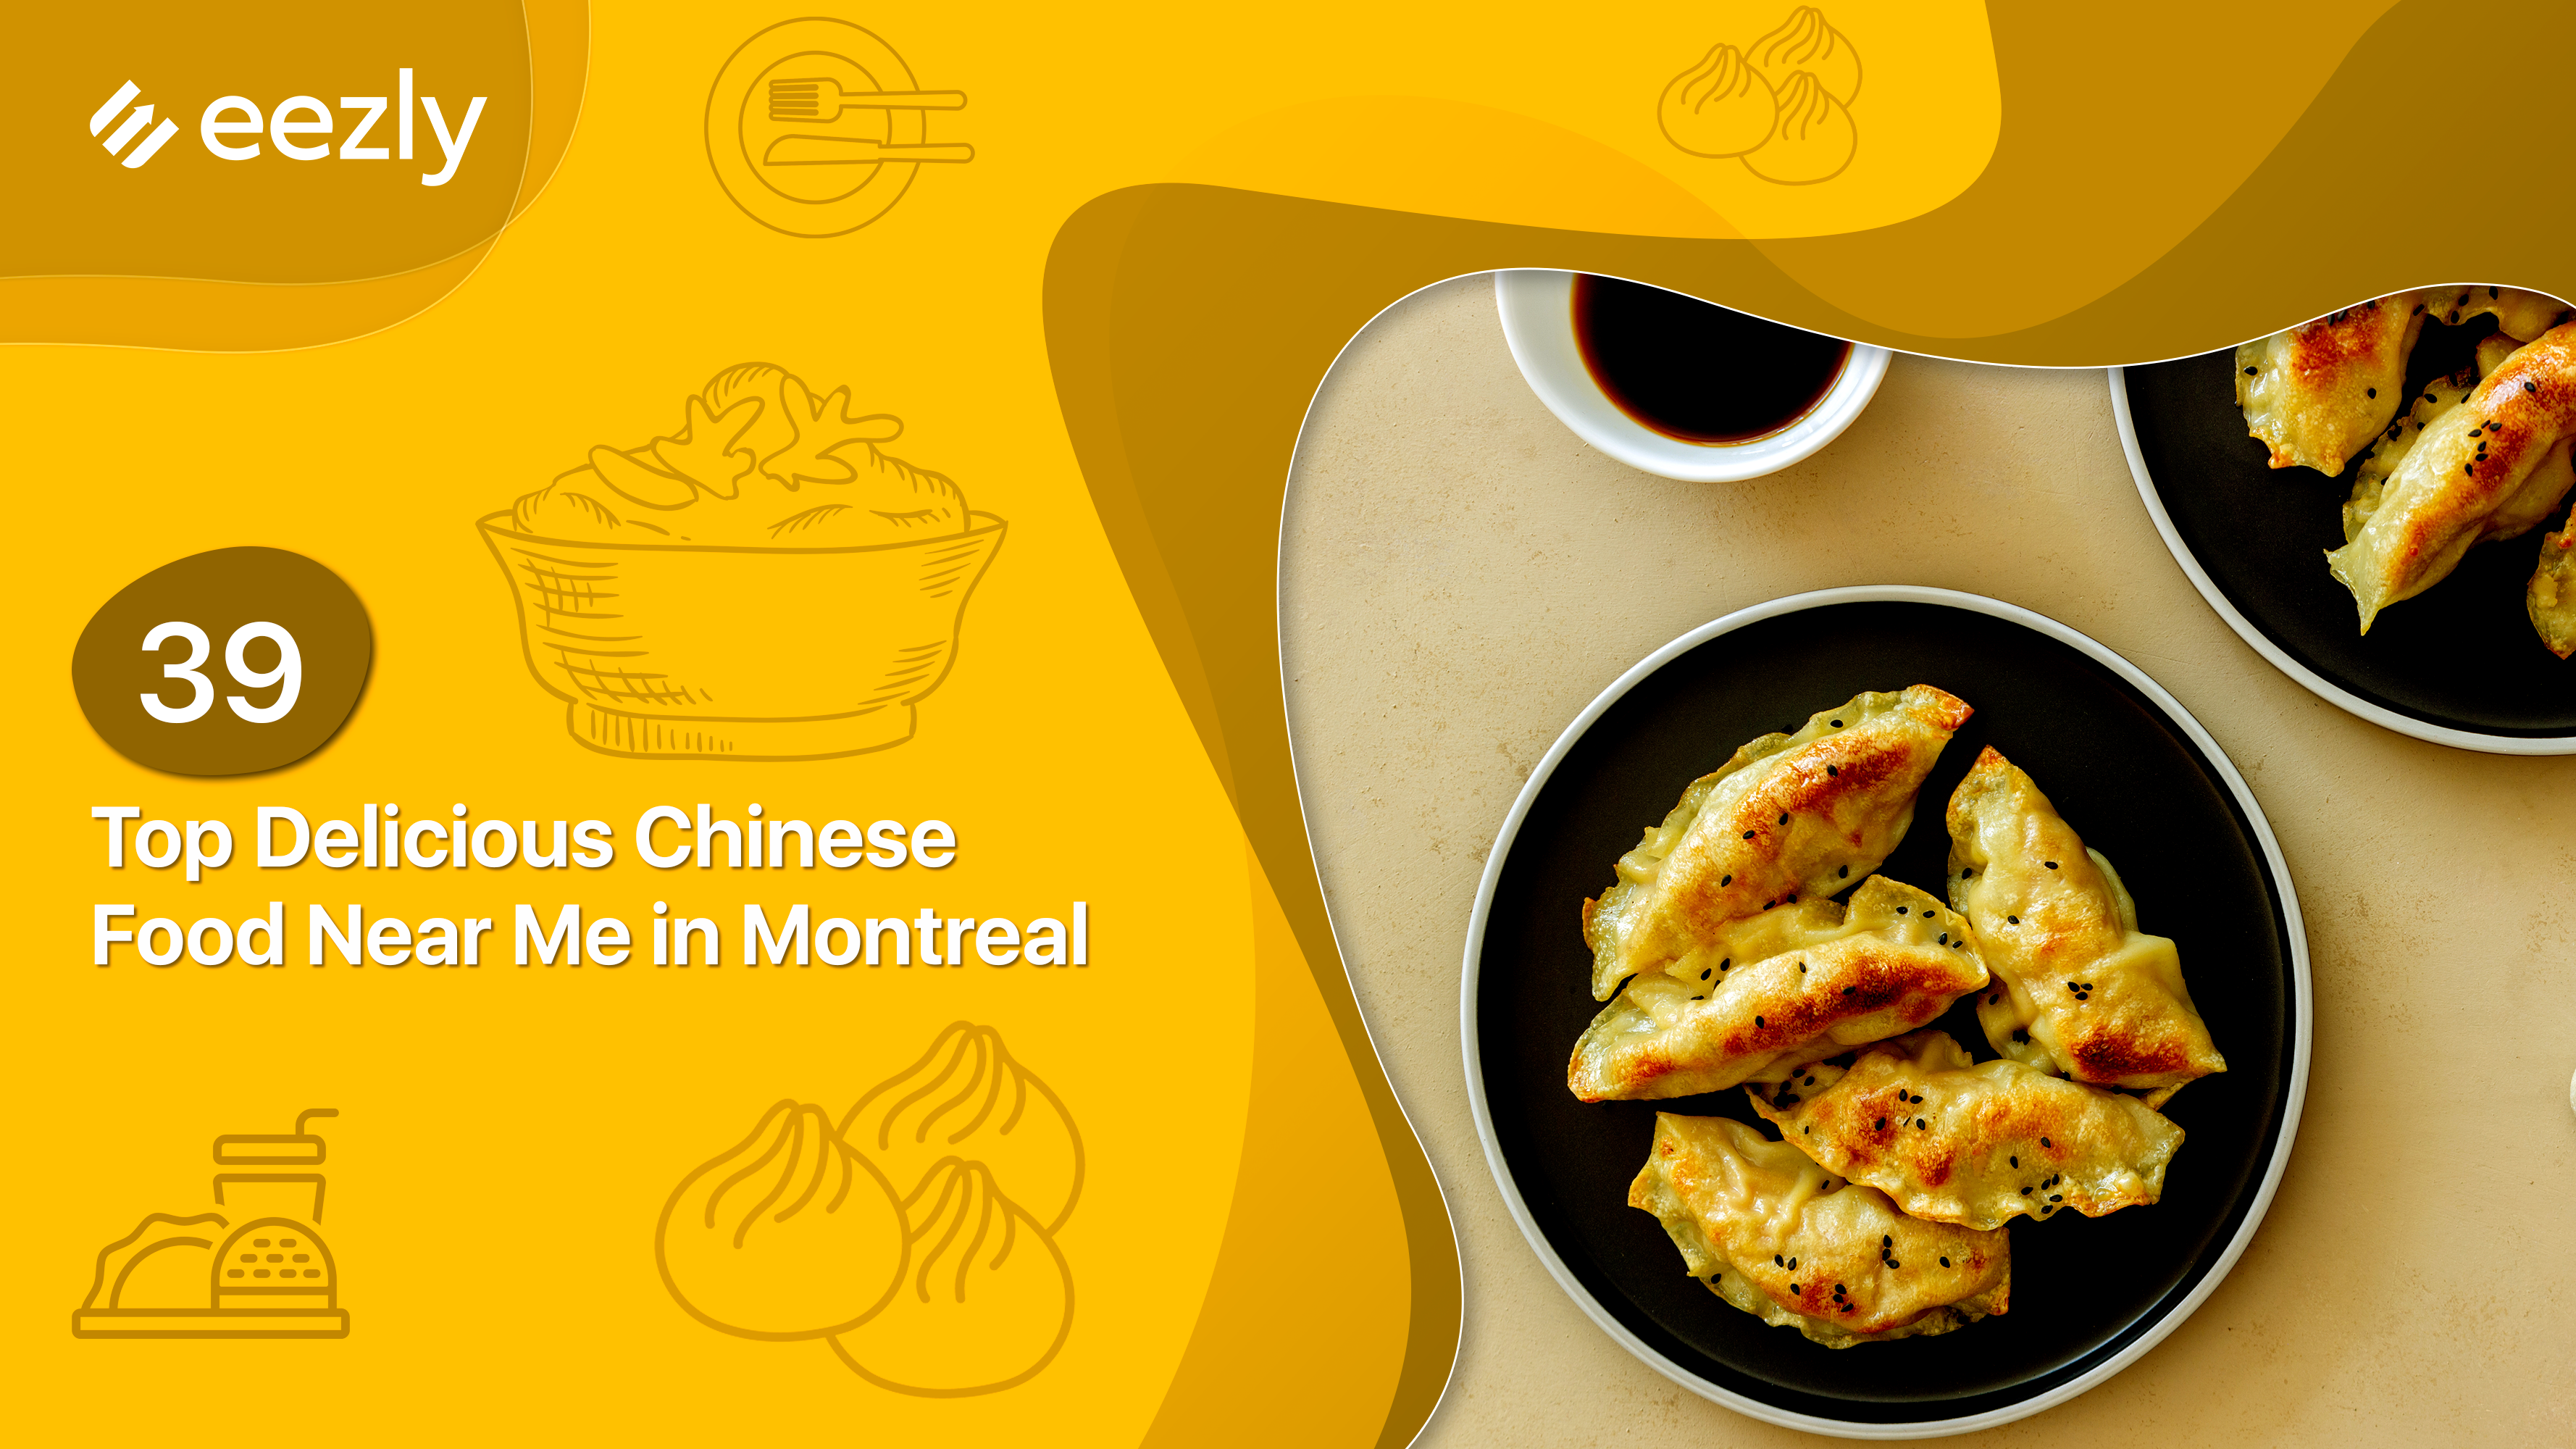 39 Top Delicious Chinese Food Near Me in Montreal